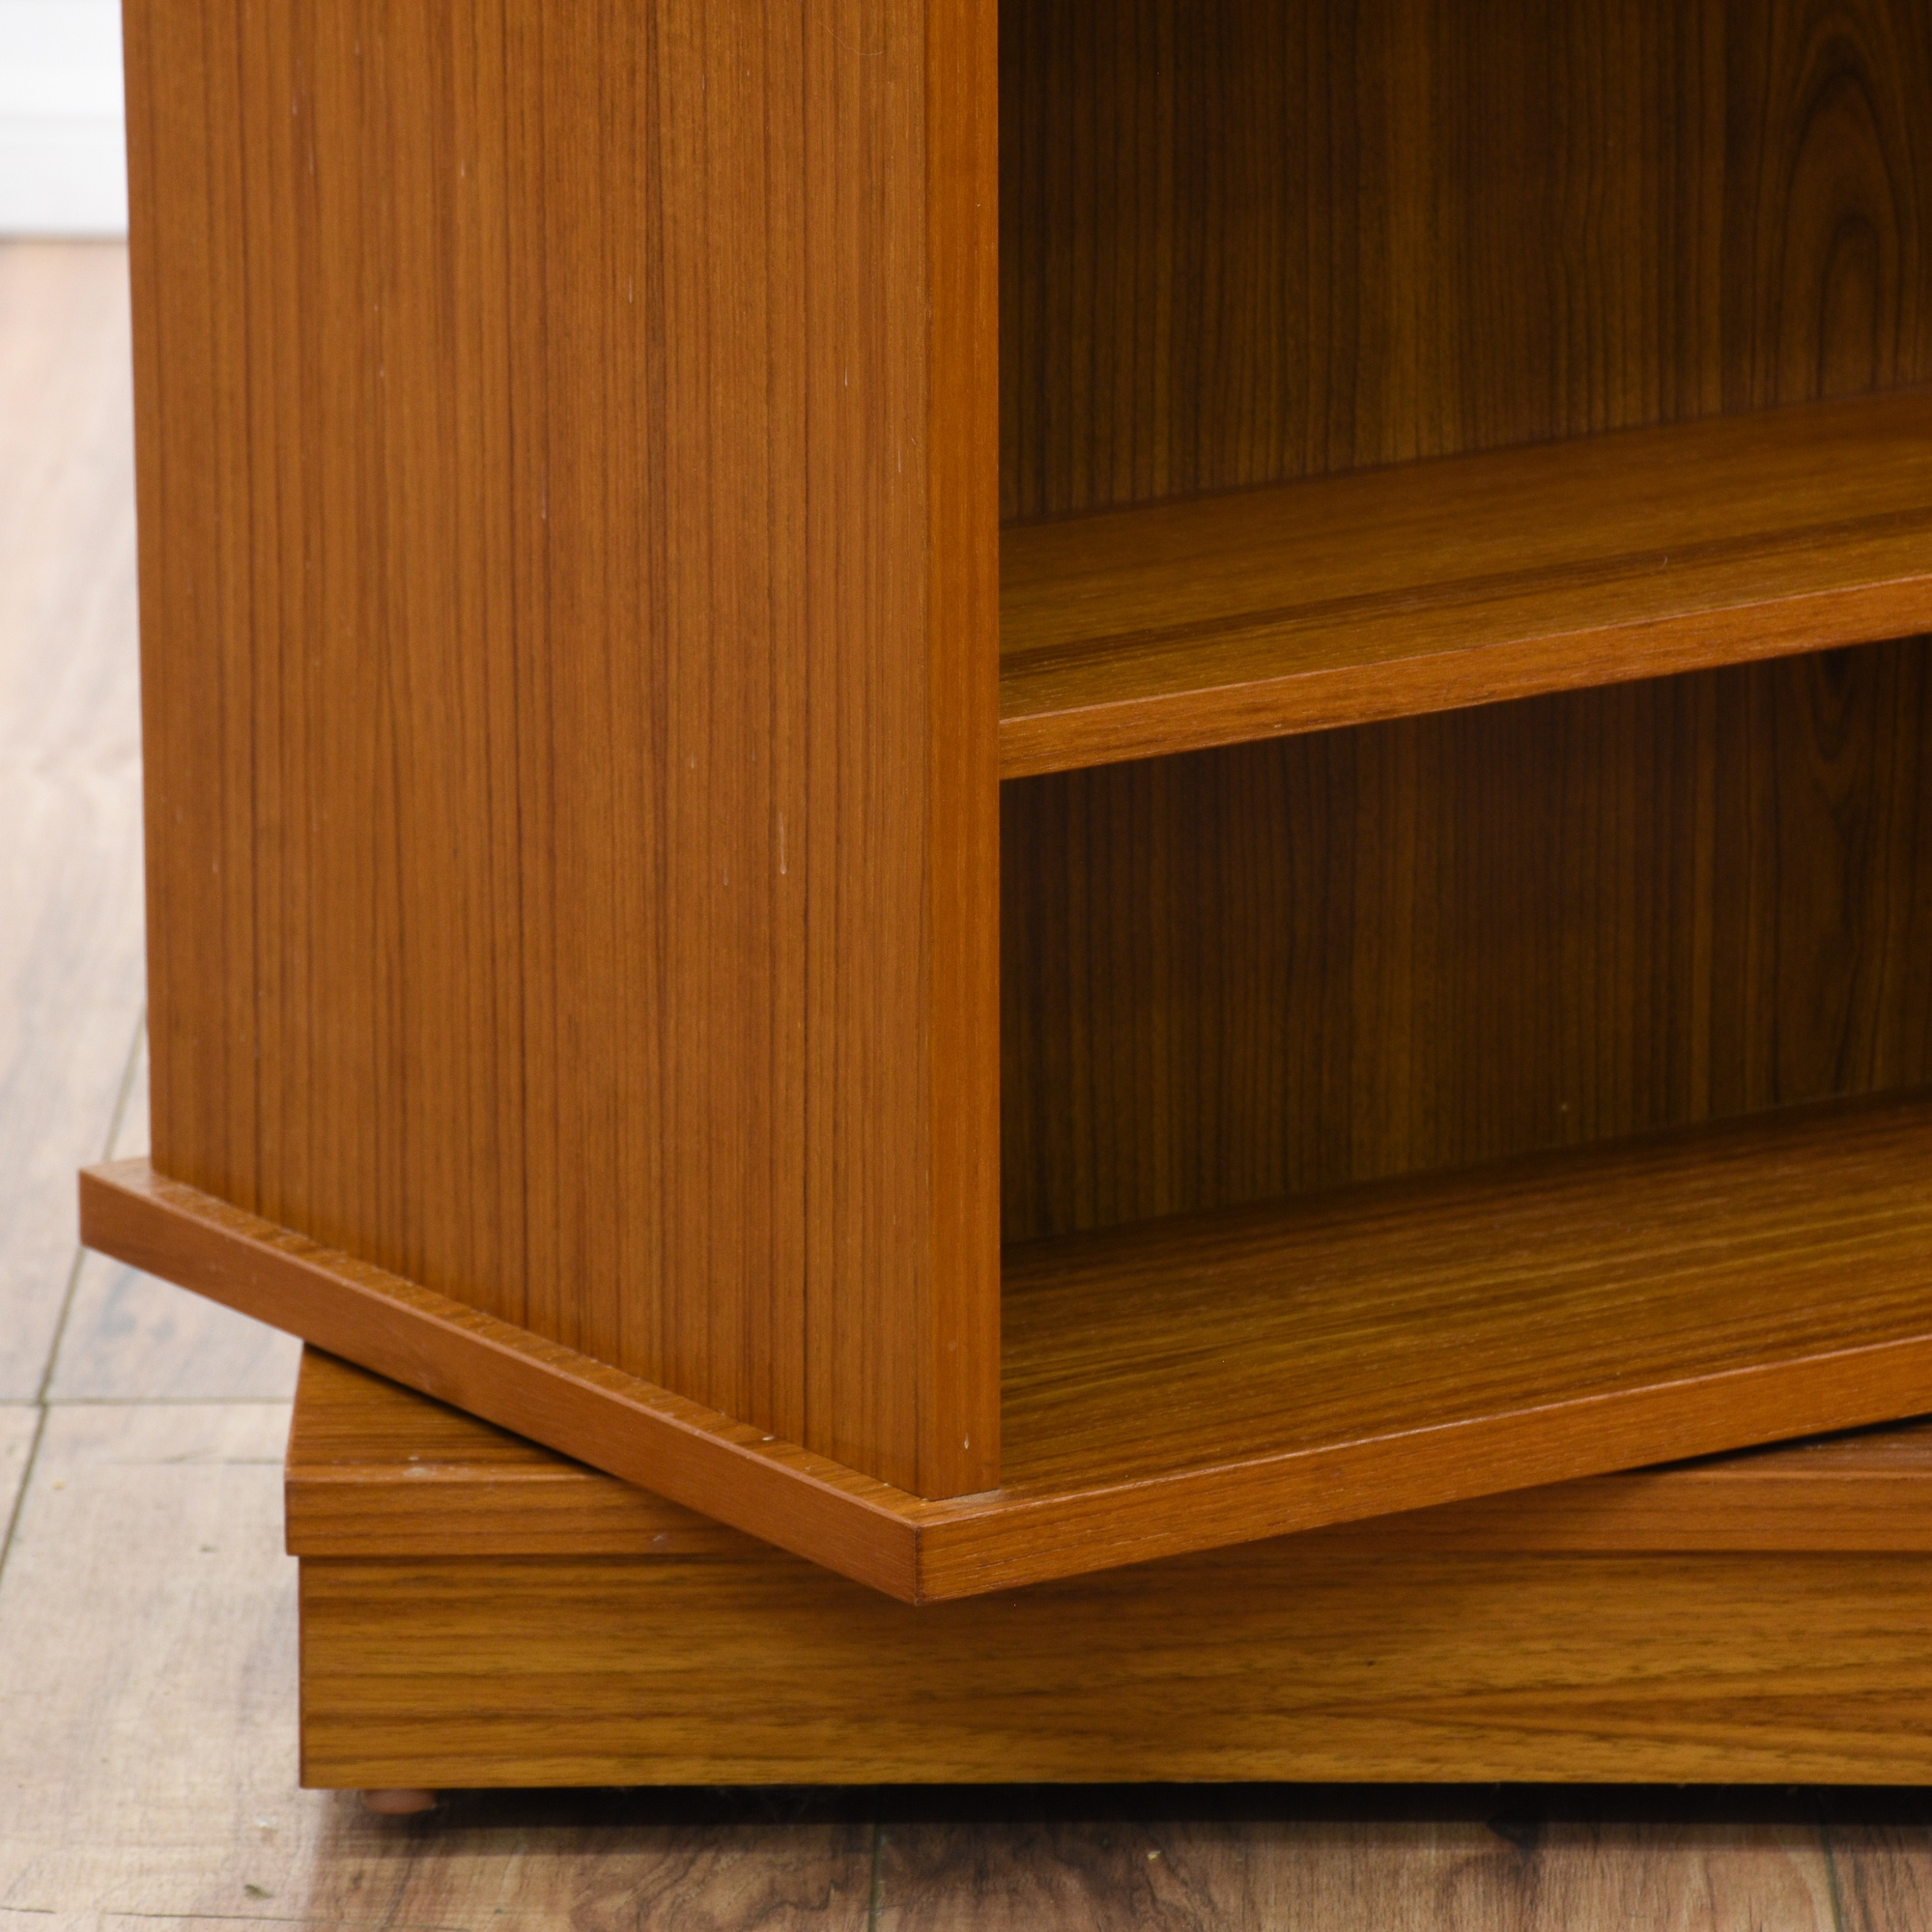 furniture en space adapt your according white adjustable shelves rotating bookcases bookcase needs storage products between ikea billy gb to